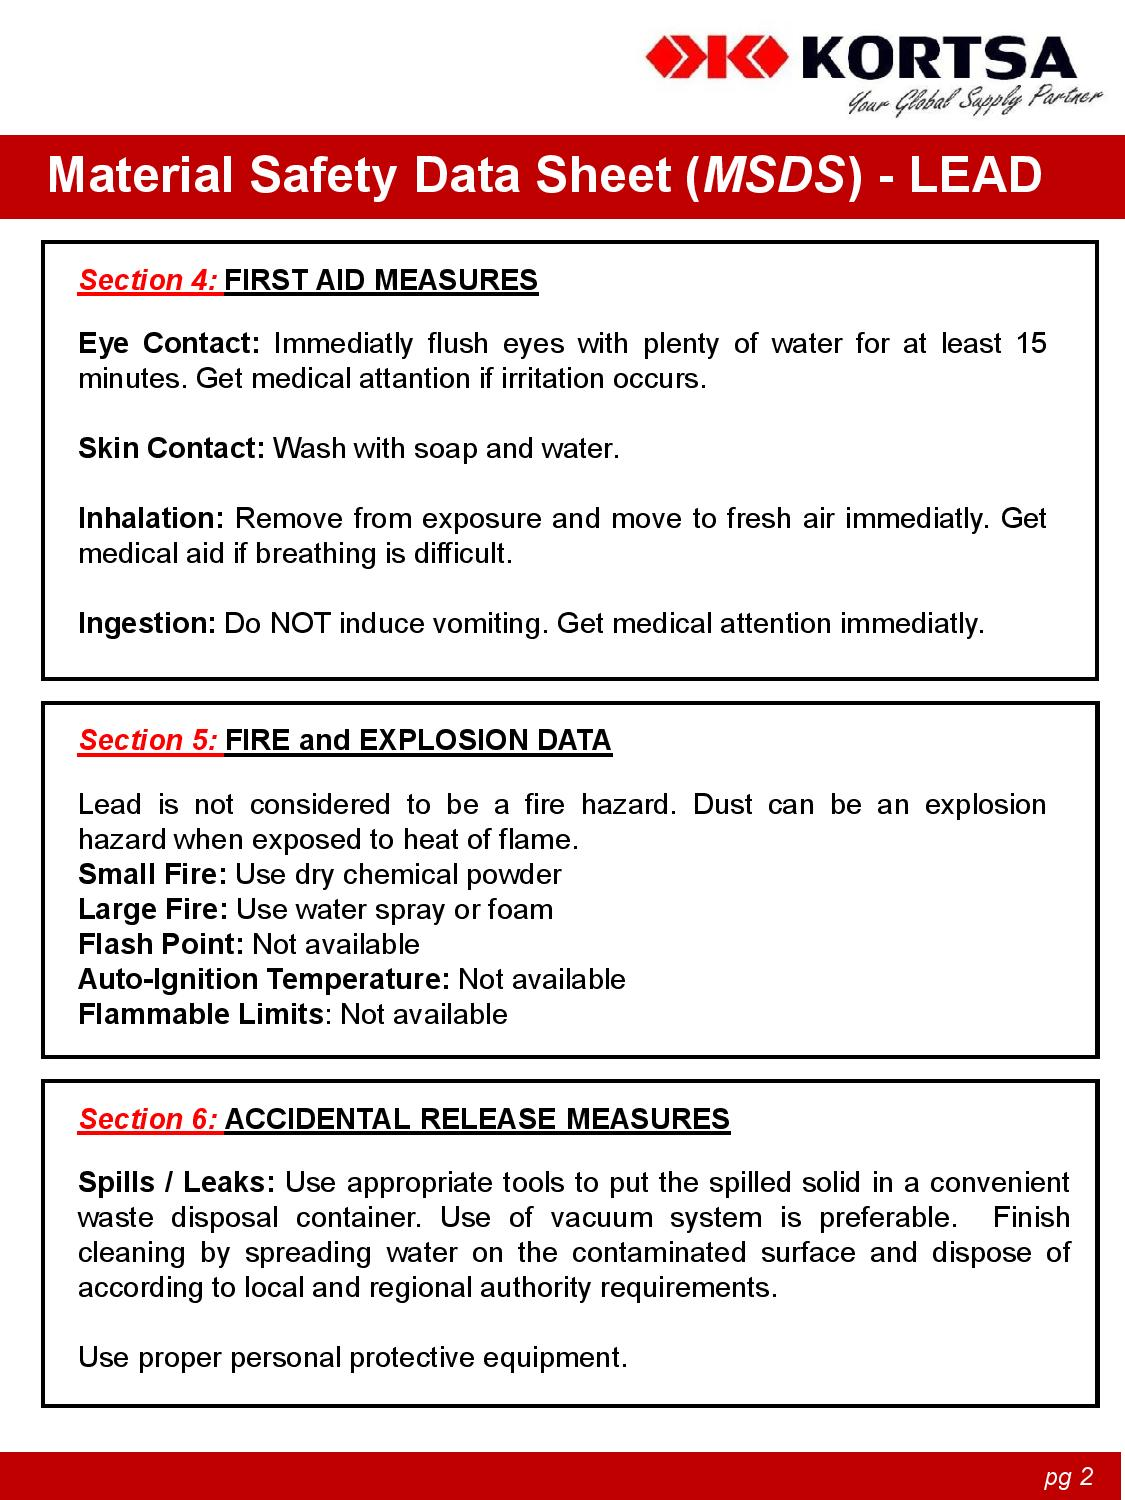 Material Safety Data Sheet image2